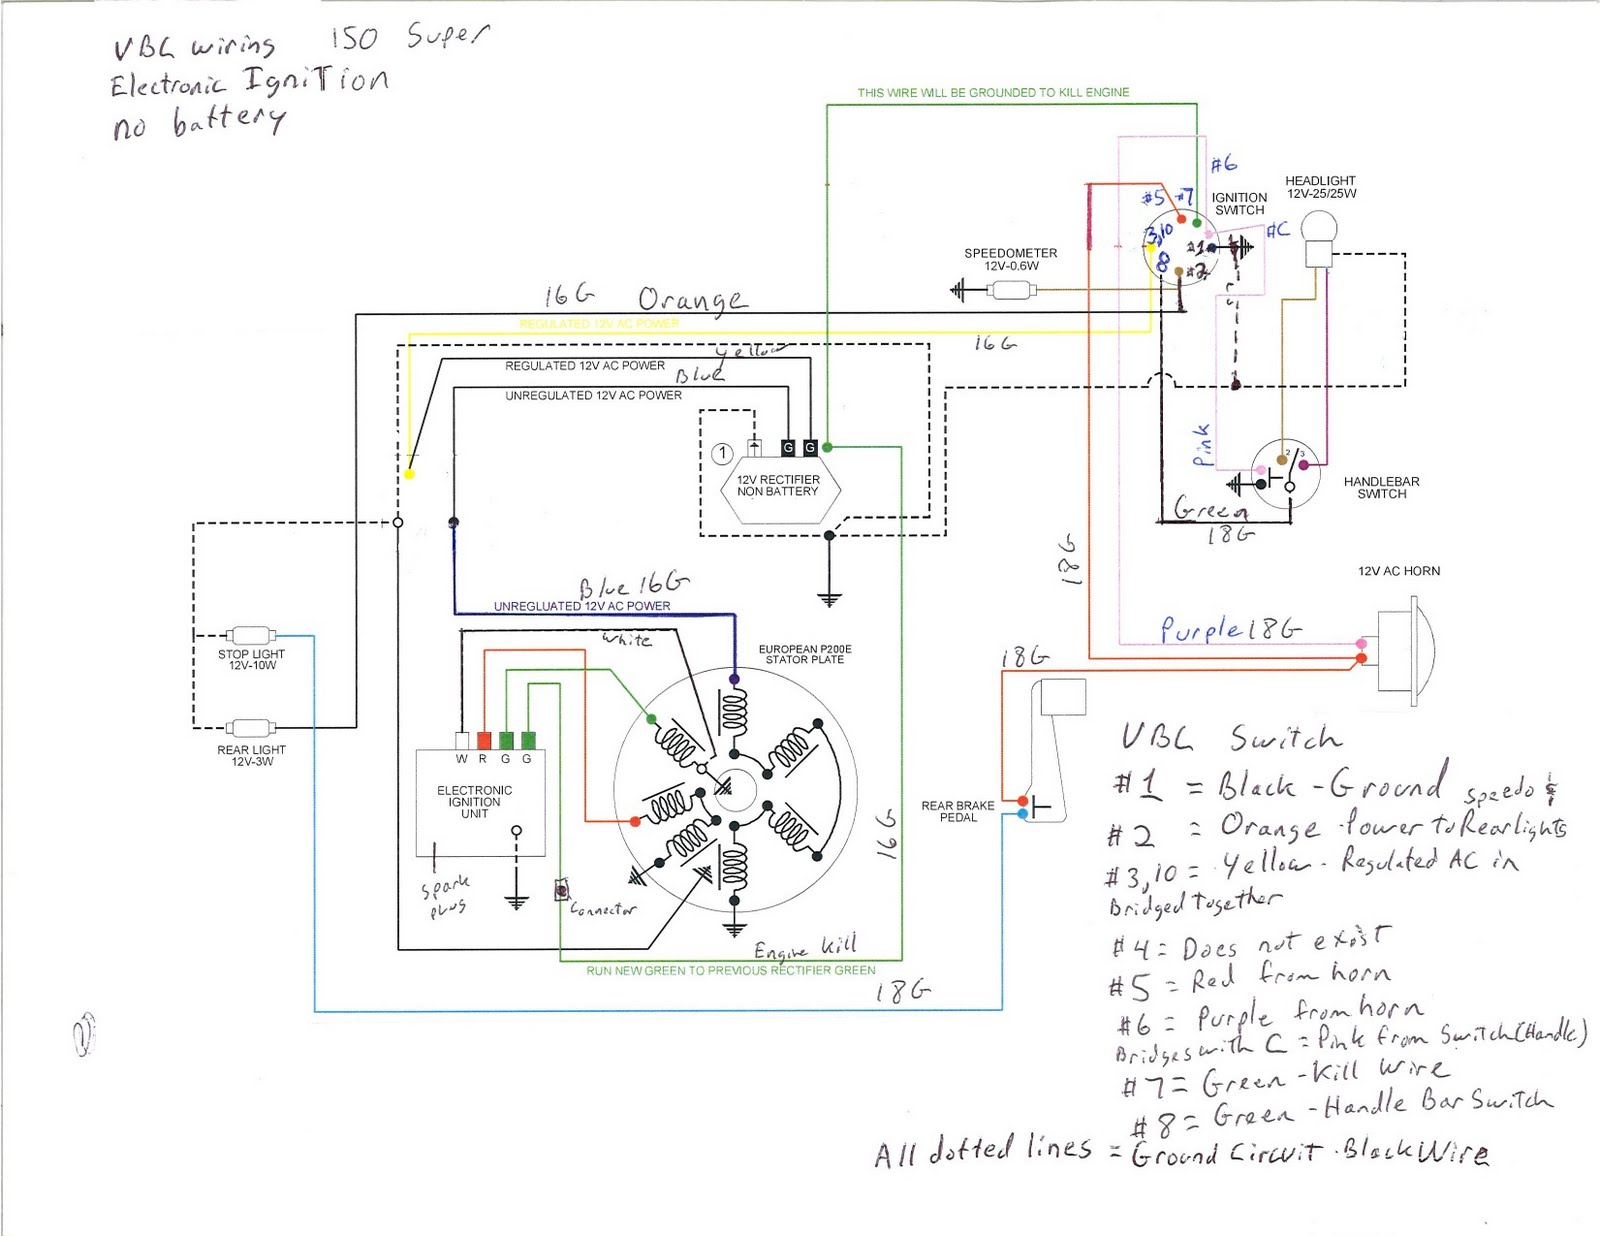 scooter ignition switch wiring diagram holden vectra gy6 rectifier free engine image for user